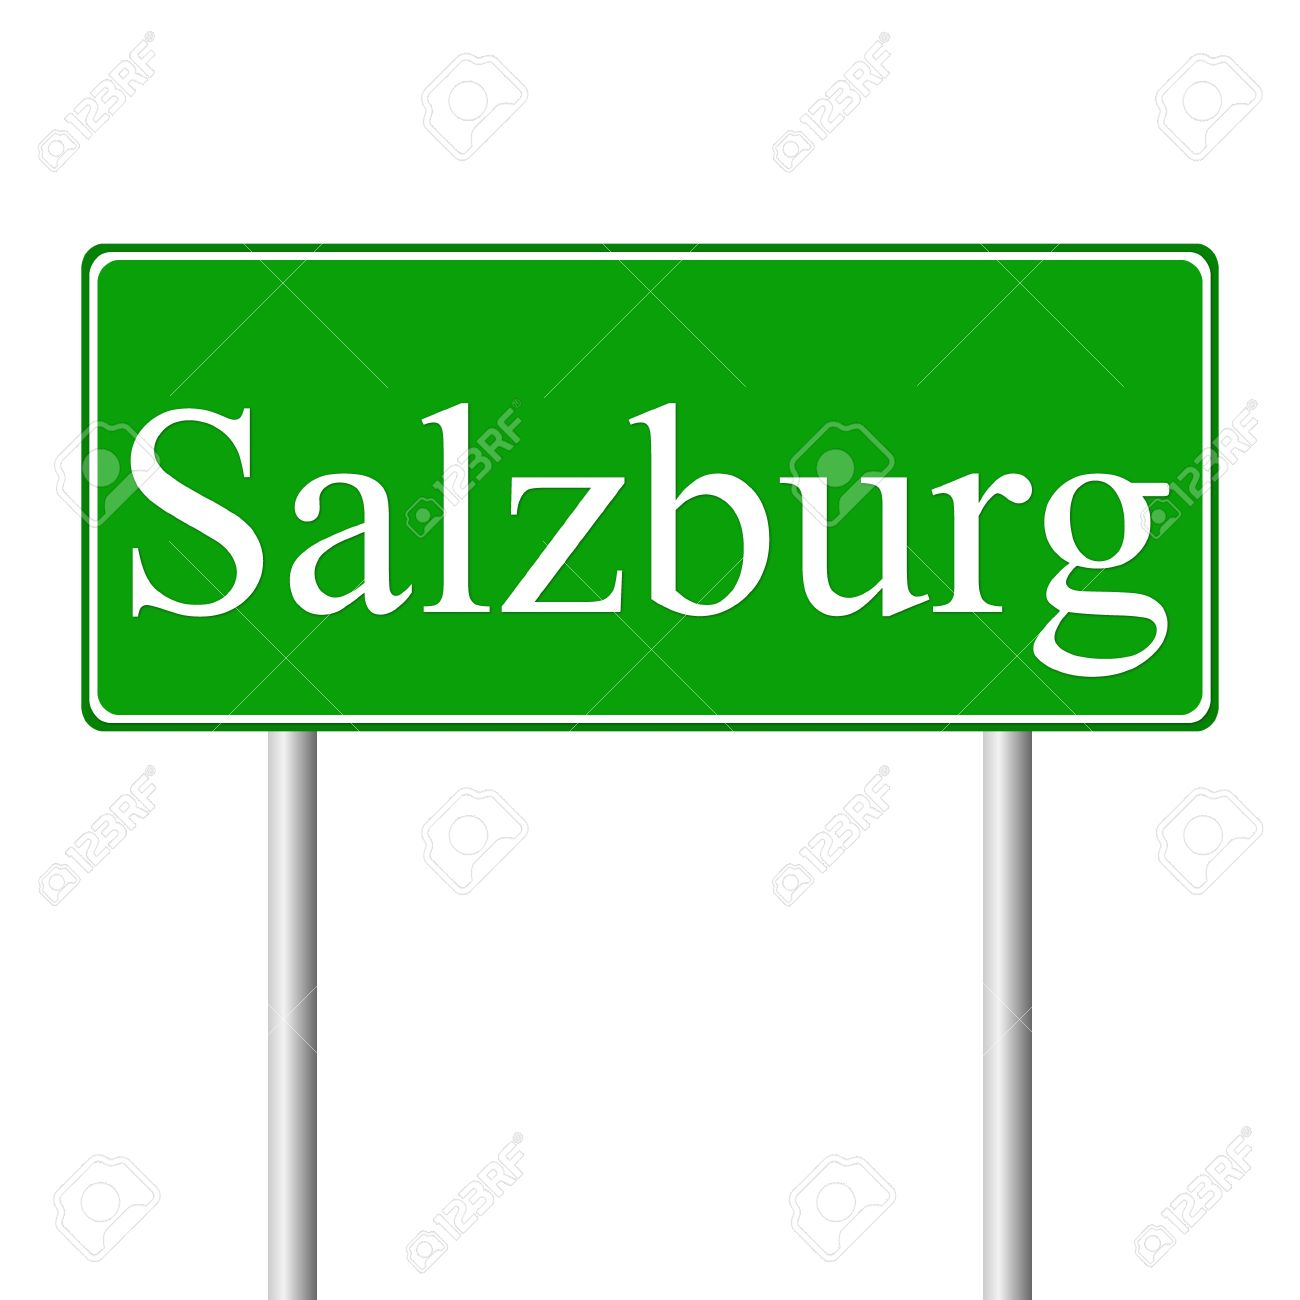 Salzburg Green Road Sign Isolated On White Background Royalty Free.